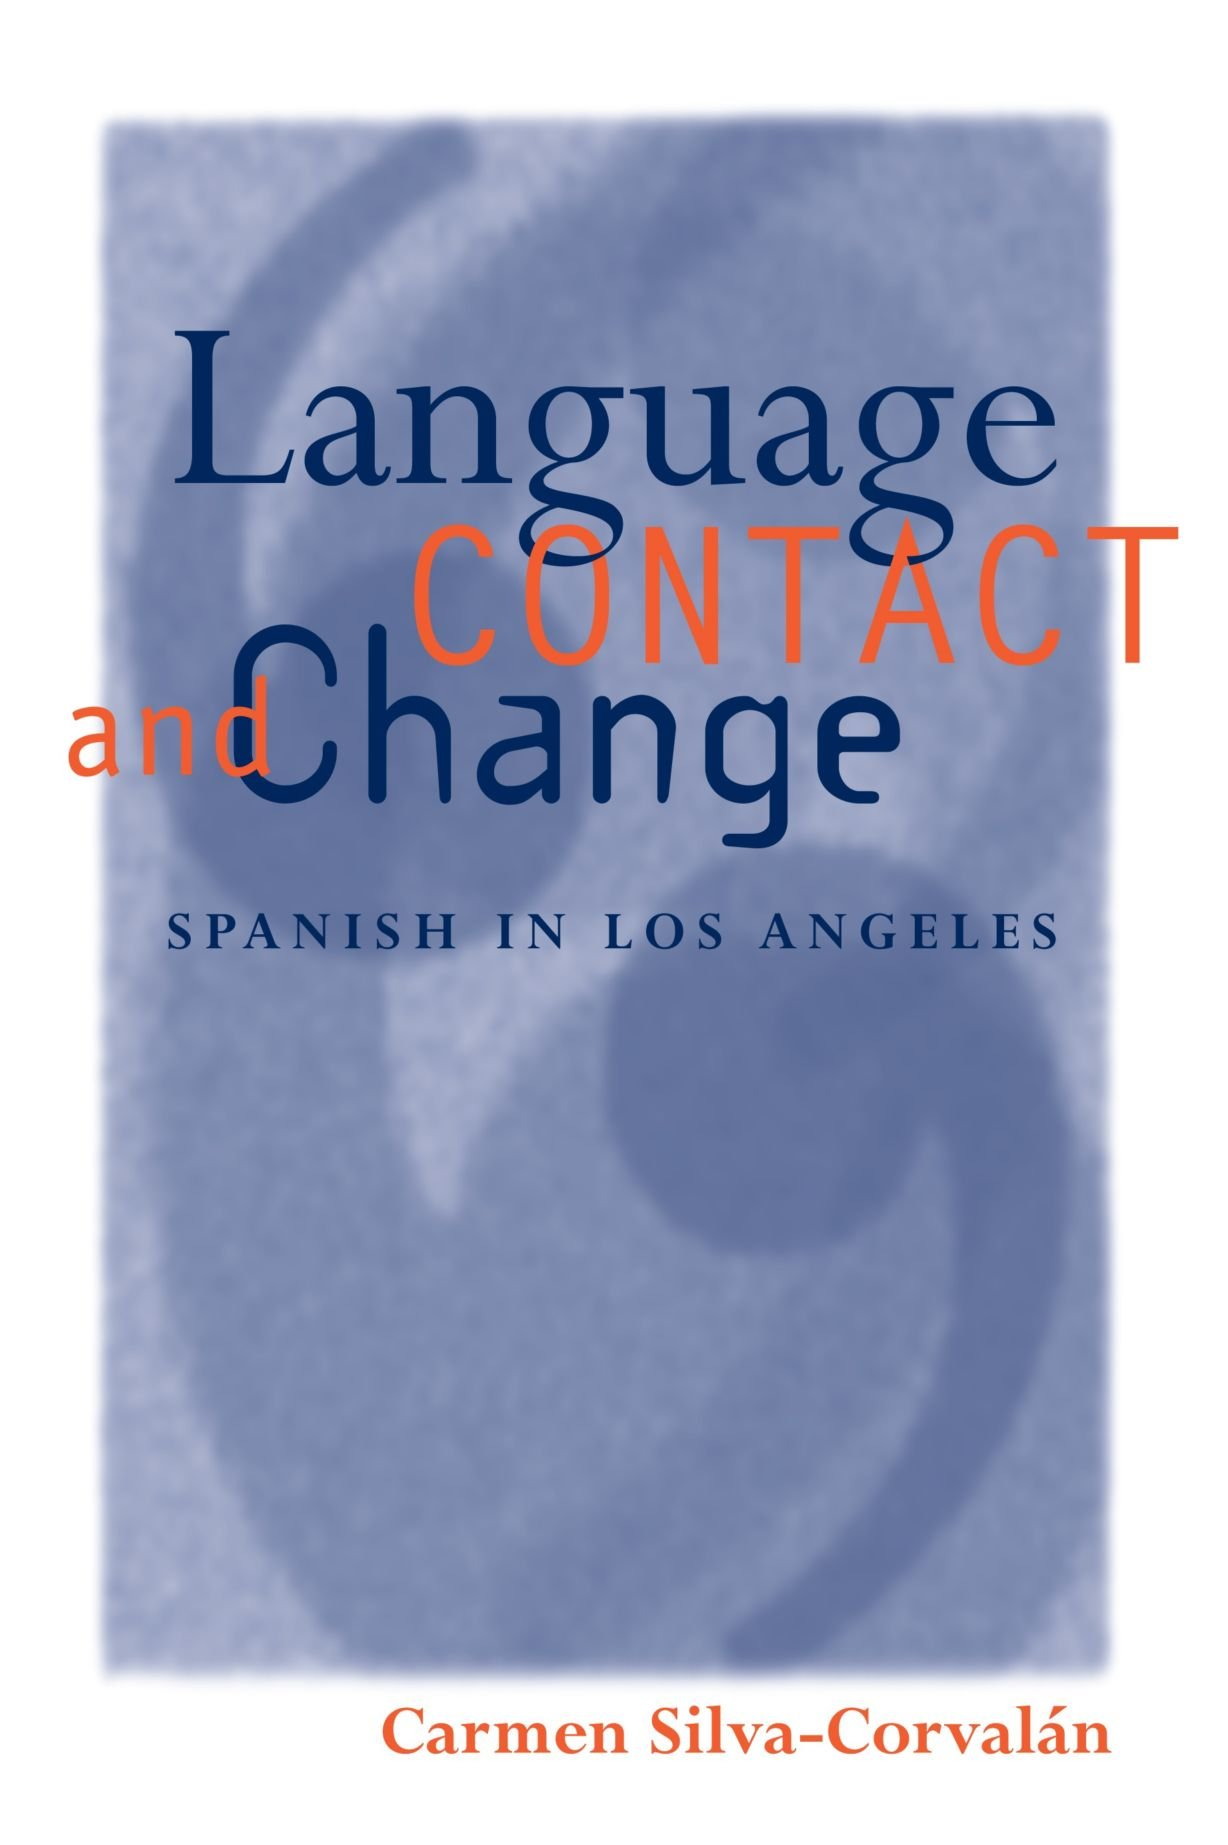 Language Contact and Change: Spanish in Los Angeles (Oxford Studies in Language Contact) by Clarendon Press